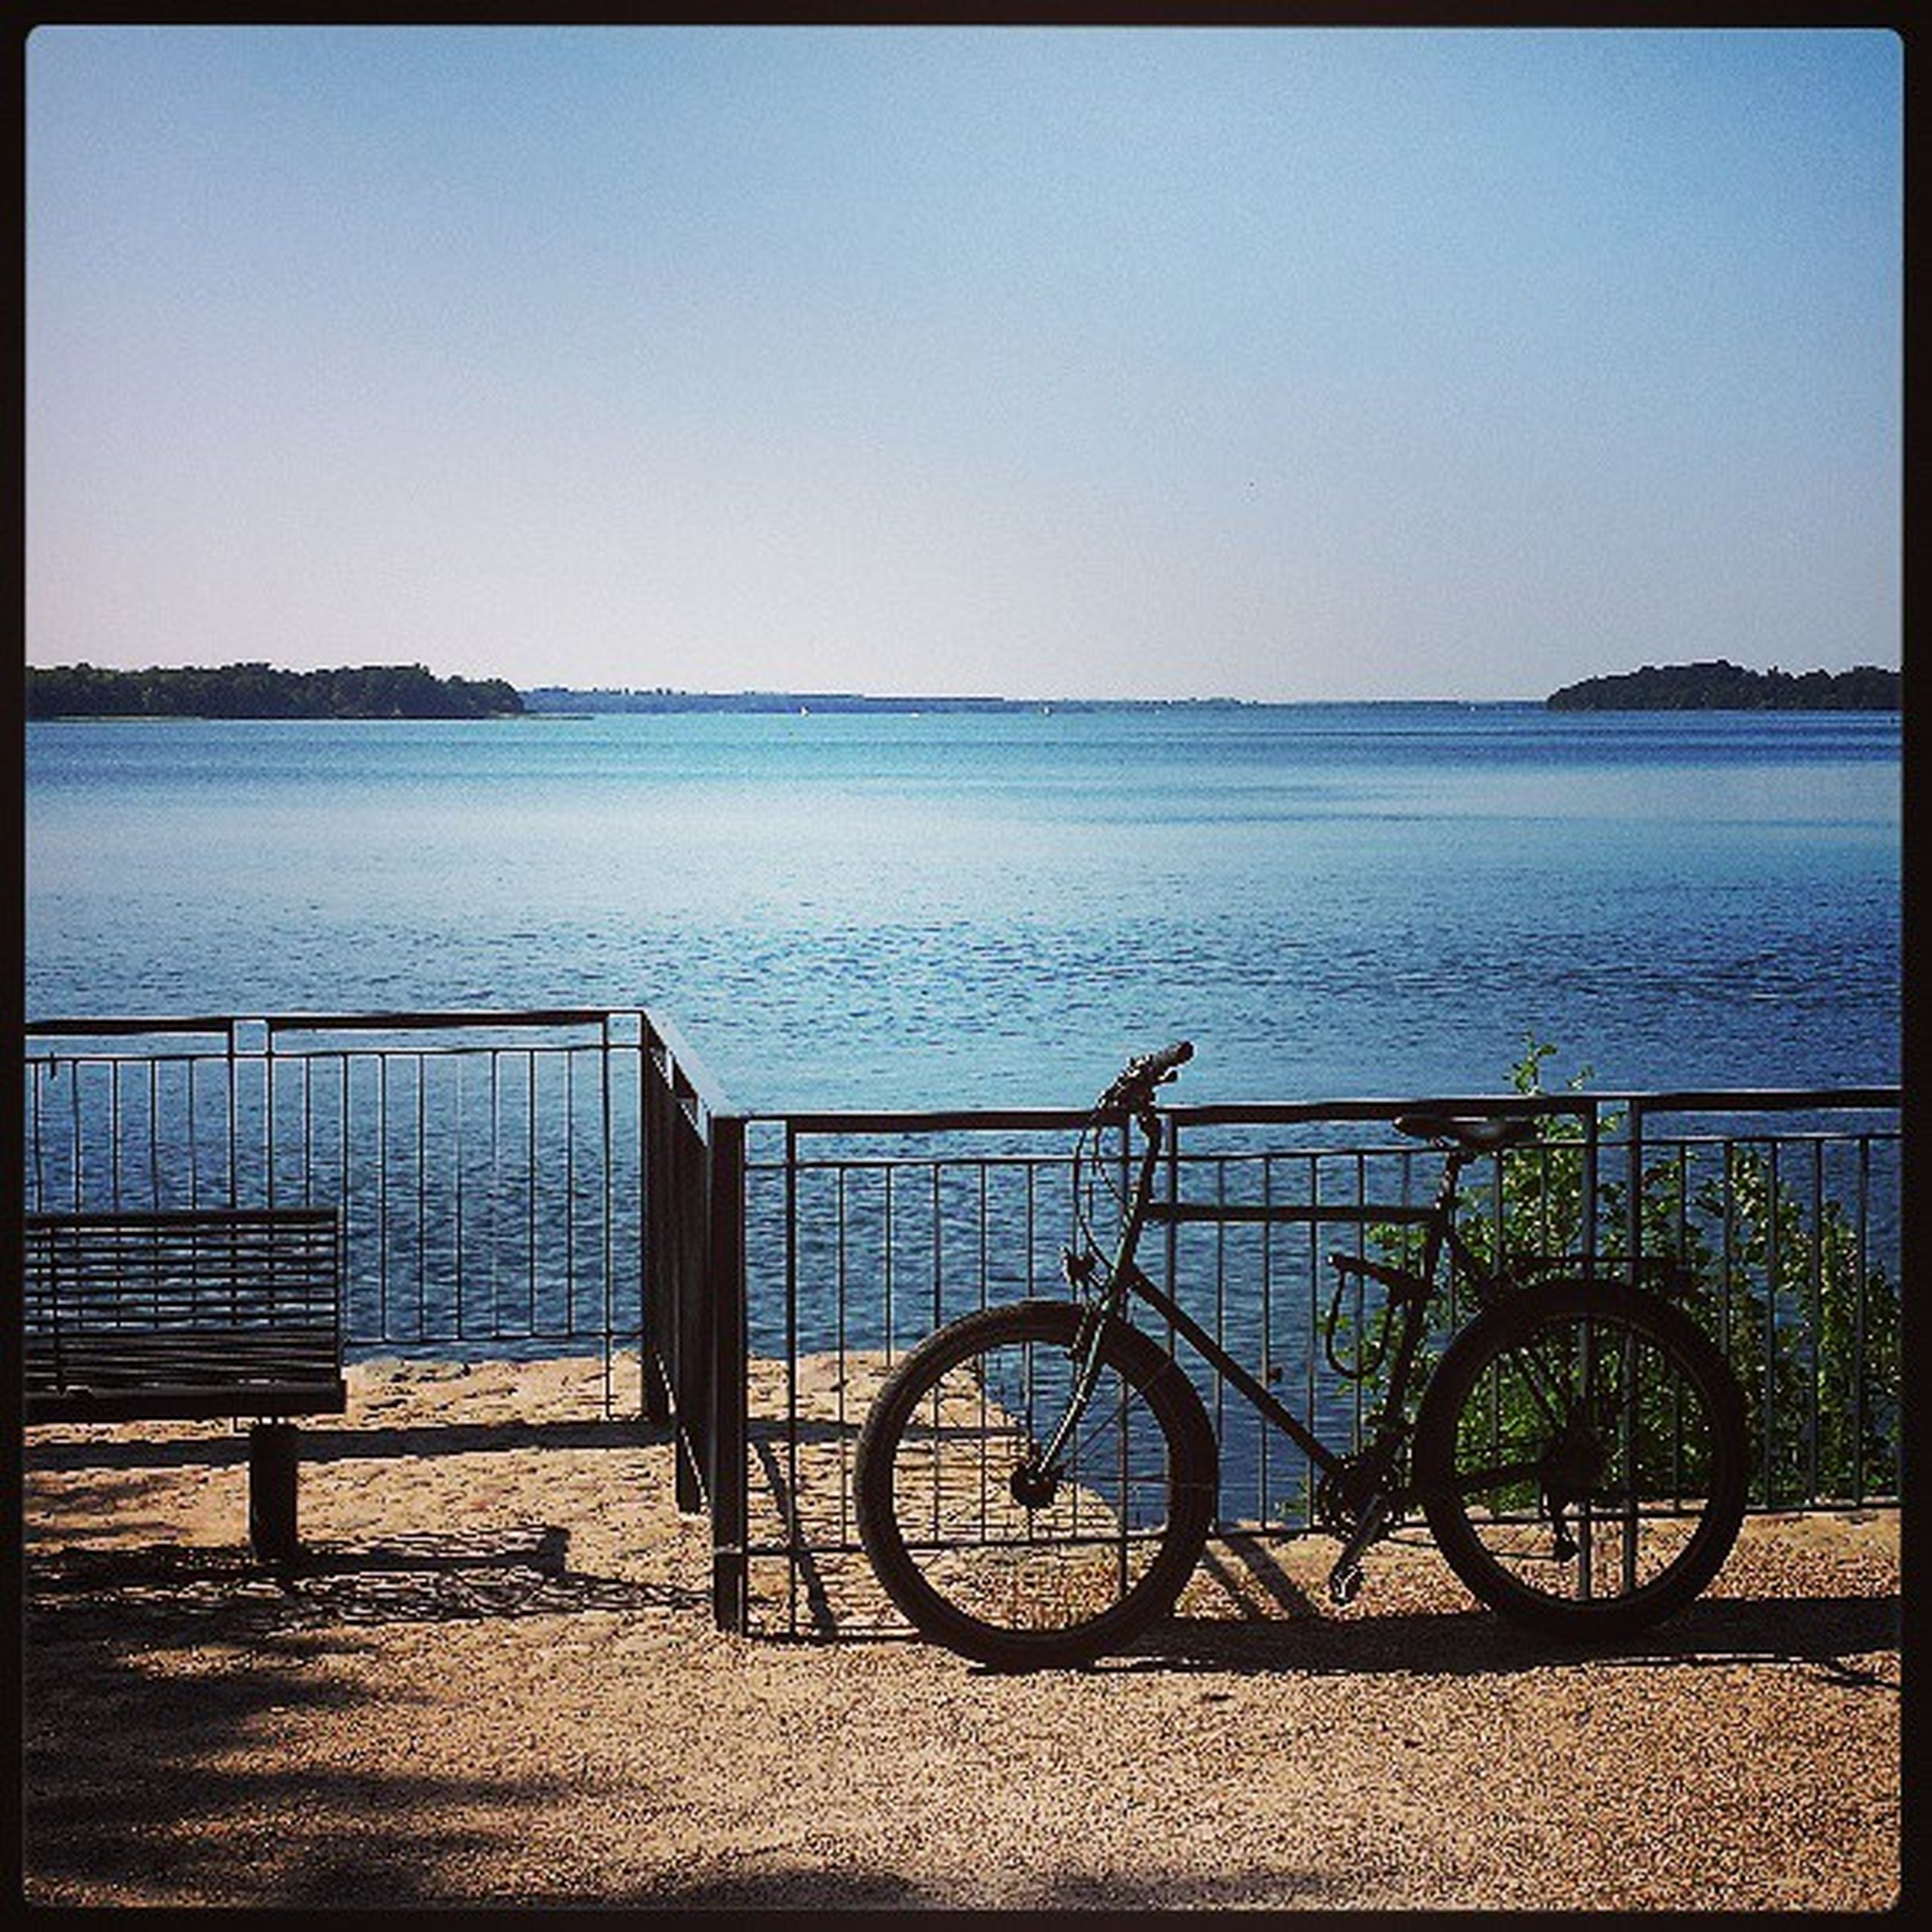 water, sea, clear sky, horizon over water, copy space, bicycle, beach, tranquility, transfer print, tranquil scene, railing, shore, scenics, nature, sky, auto post production filter, beauty in nature, blue, transportation, mode of transport